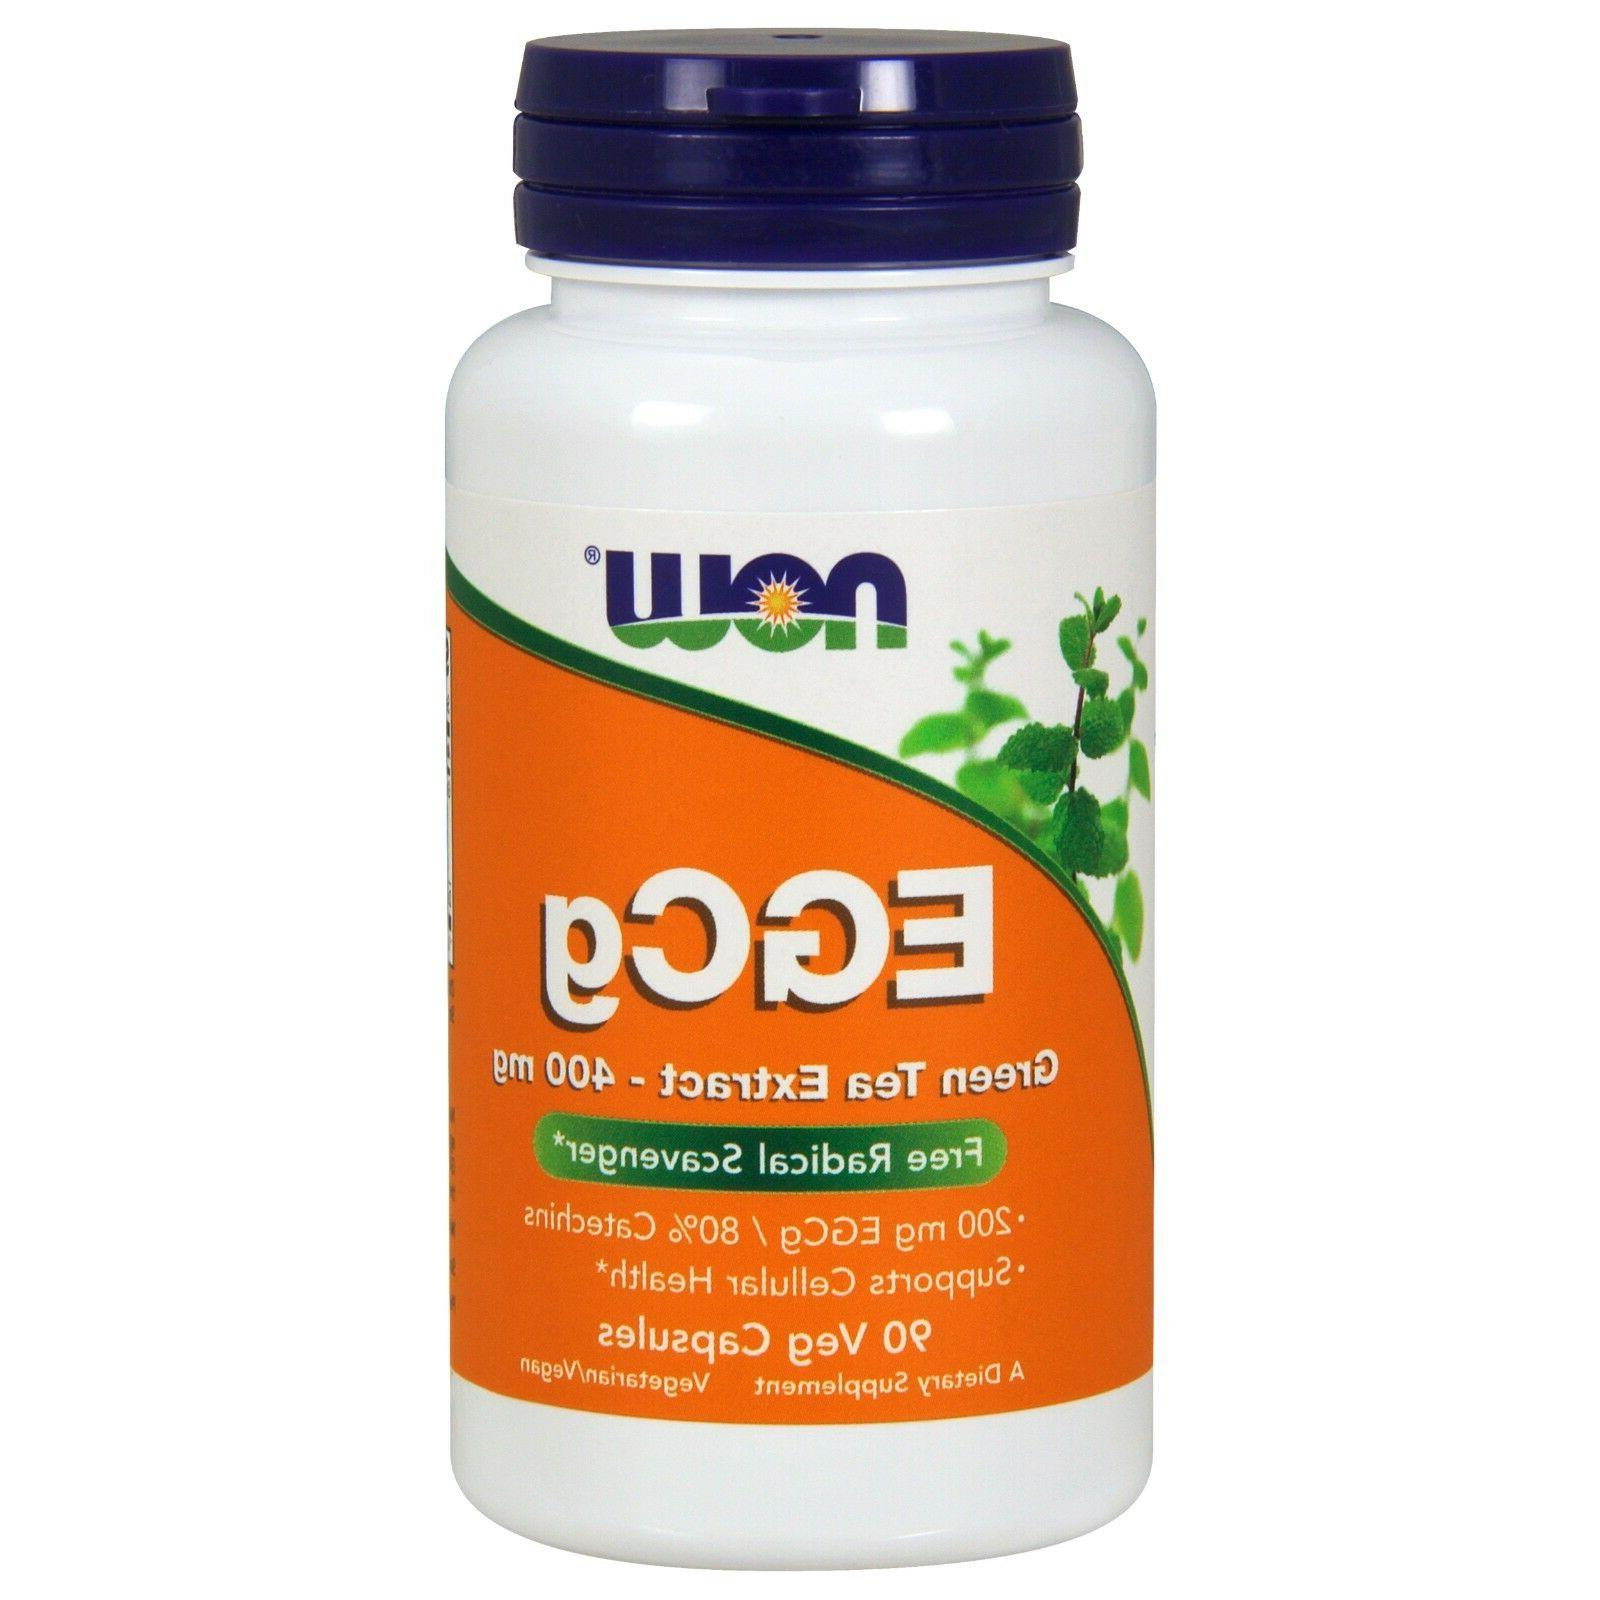 EGCg Green Tea Extract by Now Foods 90 Vegetarian Capsules